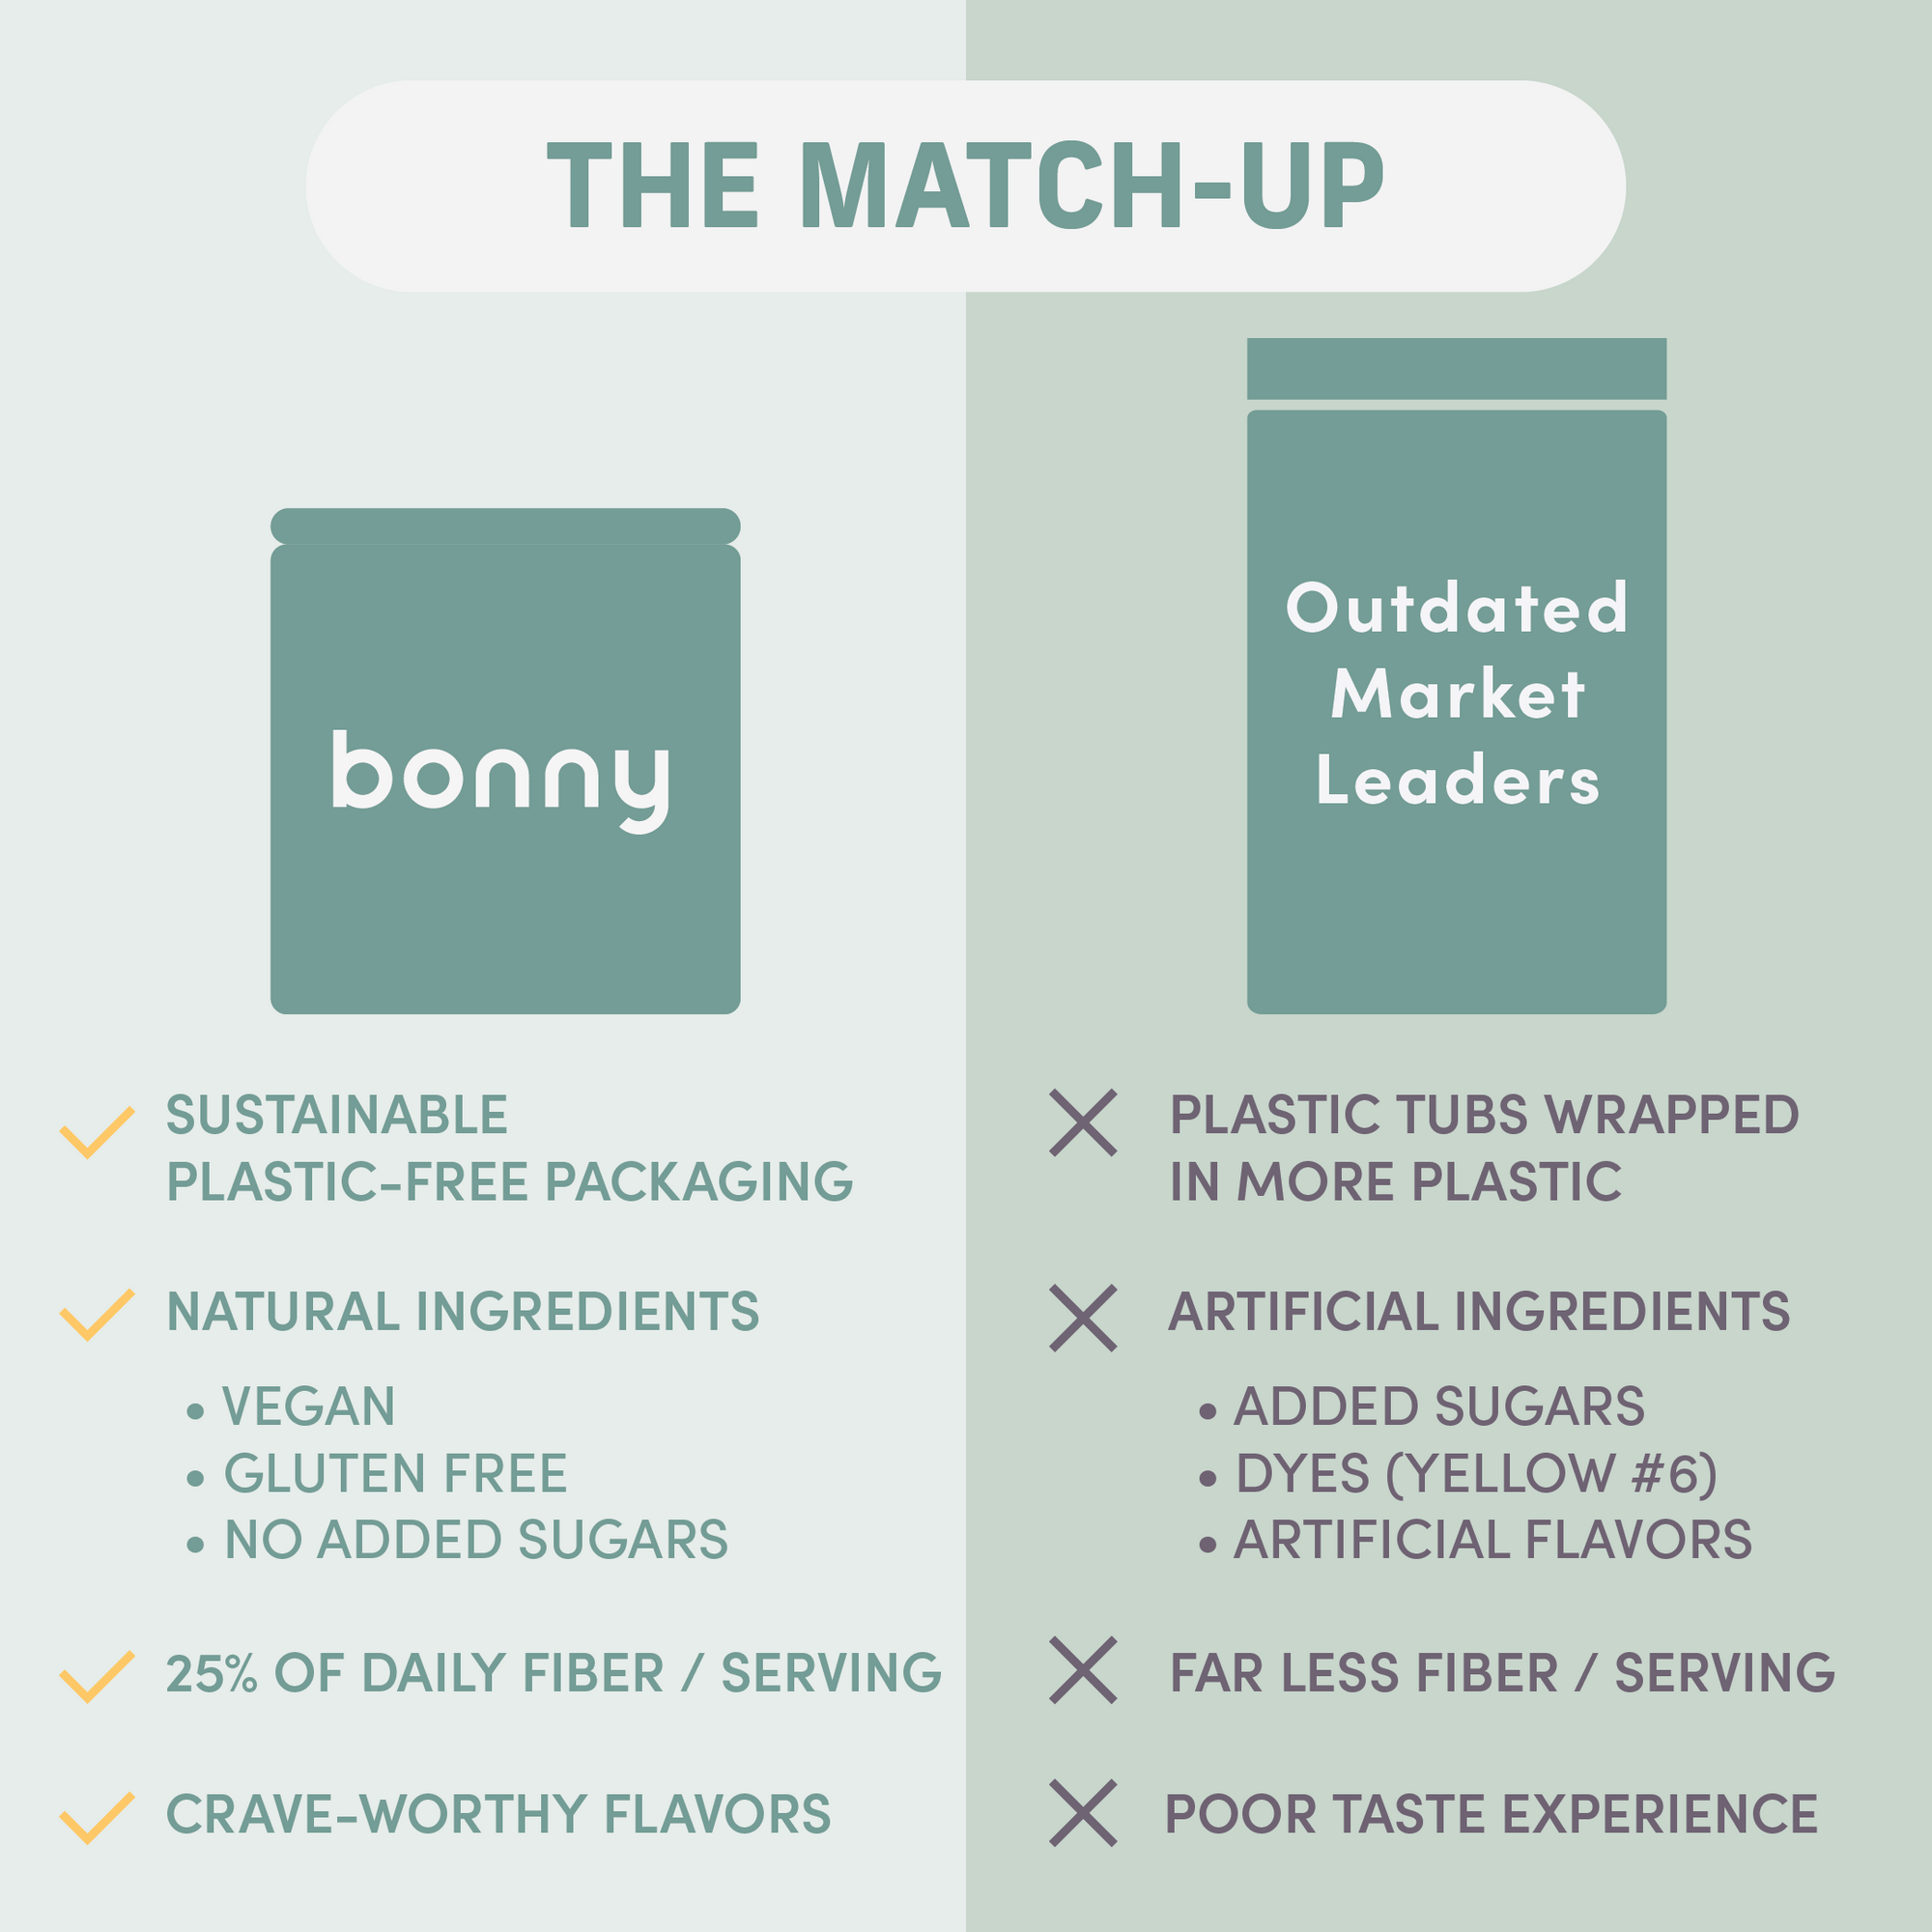 Head-to-head comparison of Bonny vs. outdated market leaders.  Bonny contains natural ingredients, more fiber per serving, tastes better and is packaged in sustainable tins.